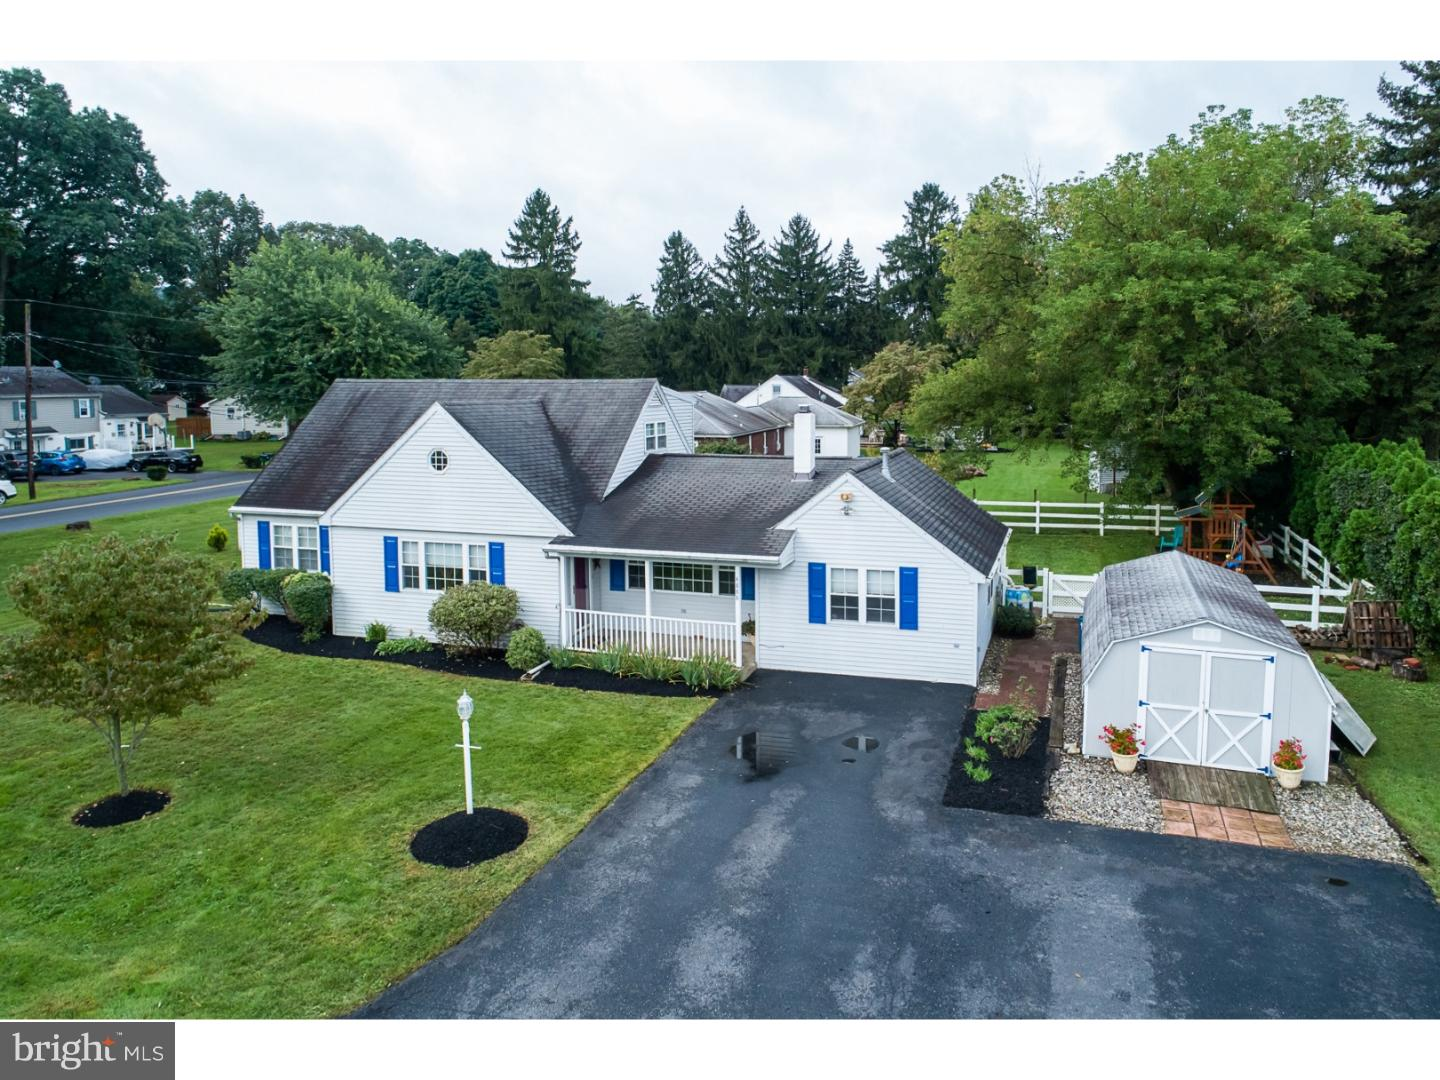 4888 APPLE LANE, CENTER VALLEY, PA 18034